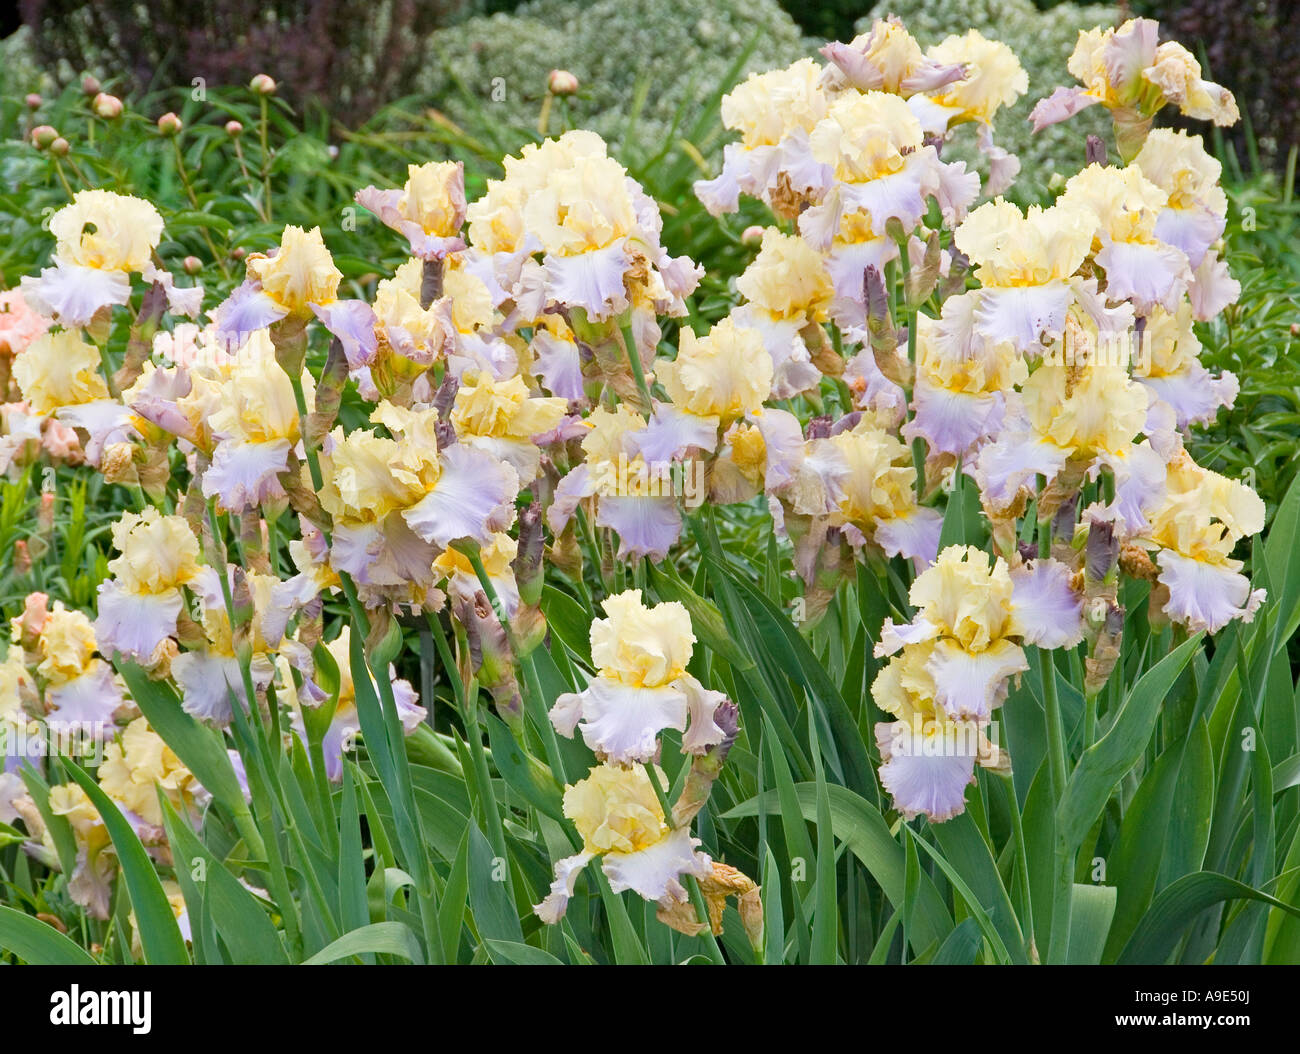 Yellow blue iris lullaby of spring flowers blooming stock photo stock photo yellow blue iris lullaby of spring flowers blooming dhlflorist Choice Image